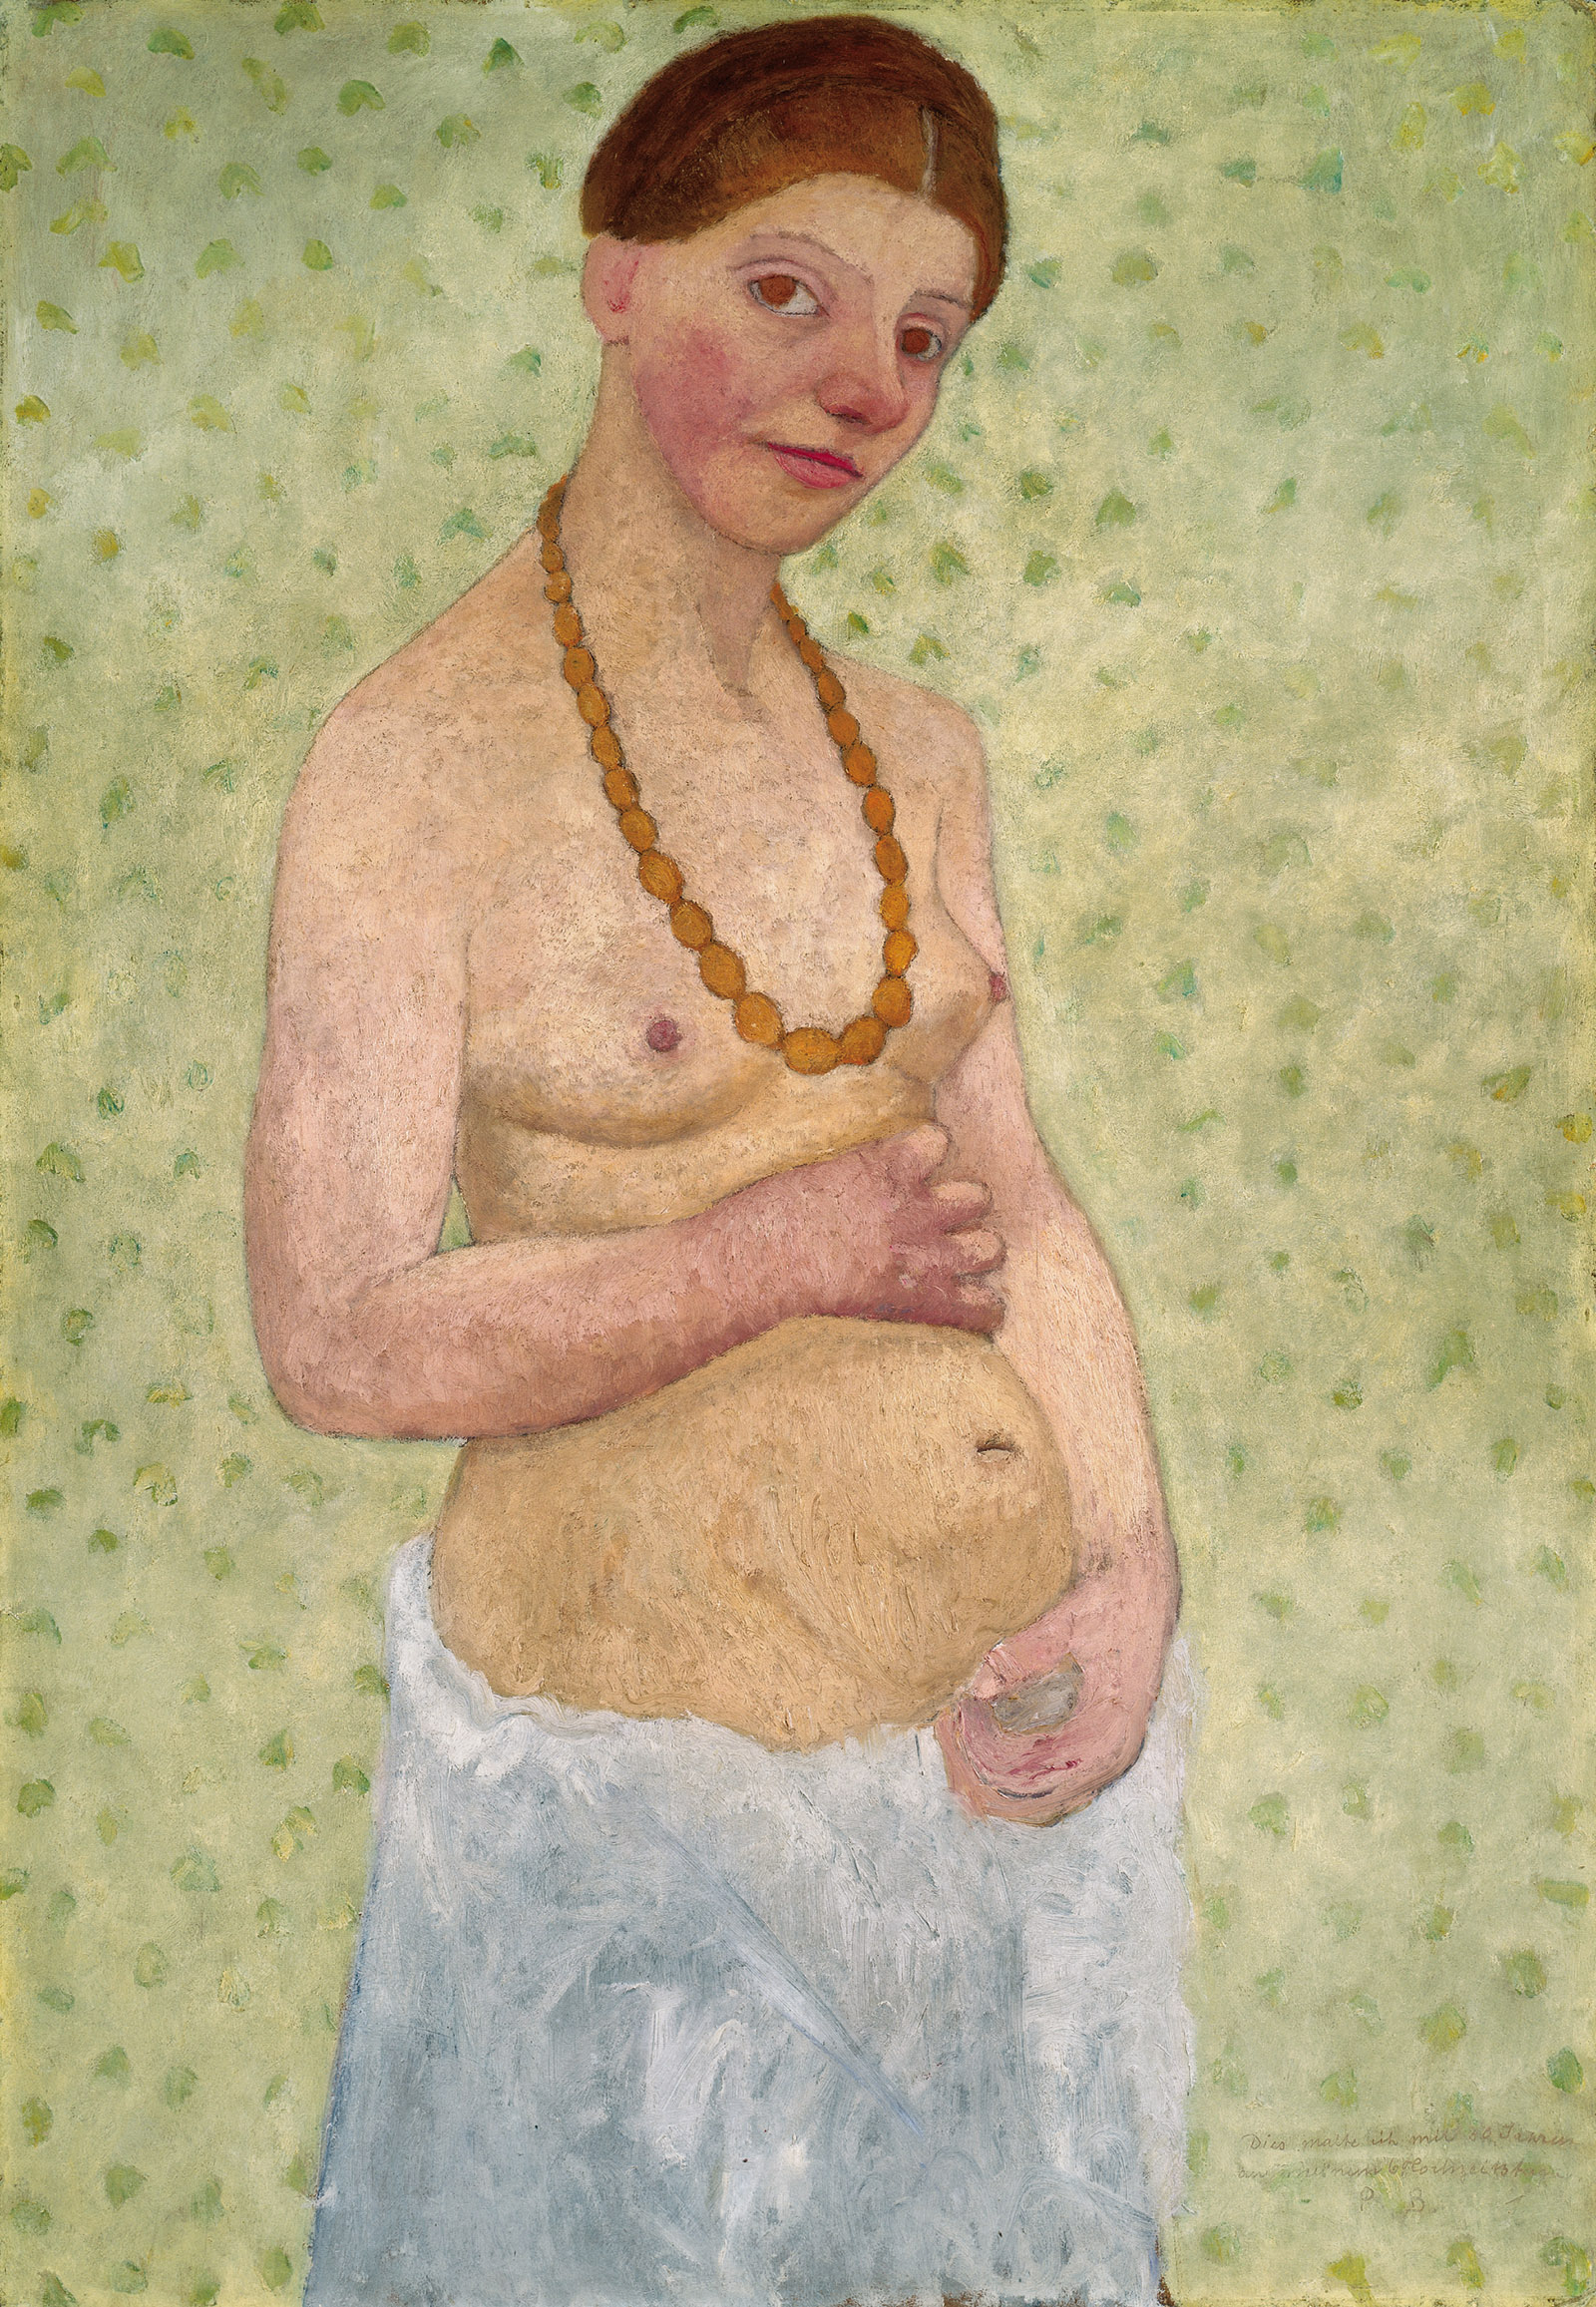 Self-Portrait on Her Sixth Wedding Anniversary by Paula Modersohn-Becker